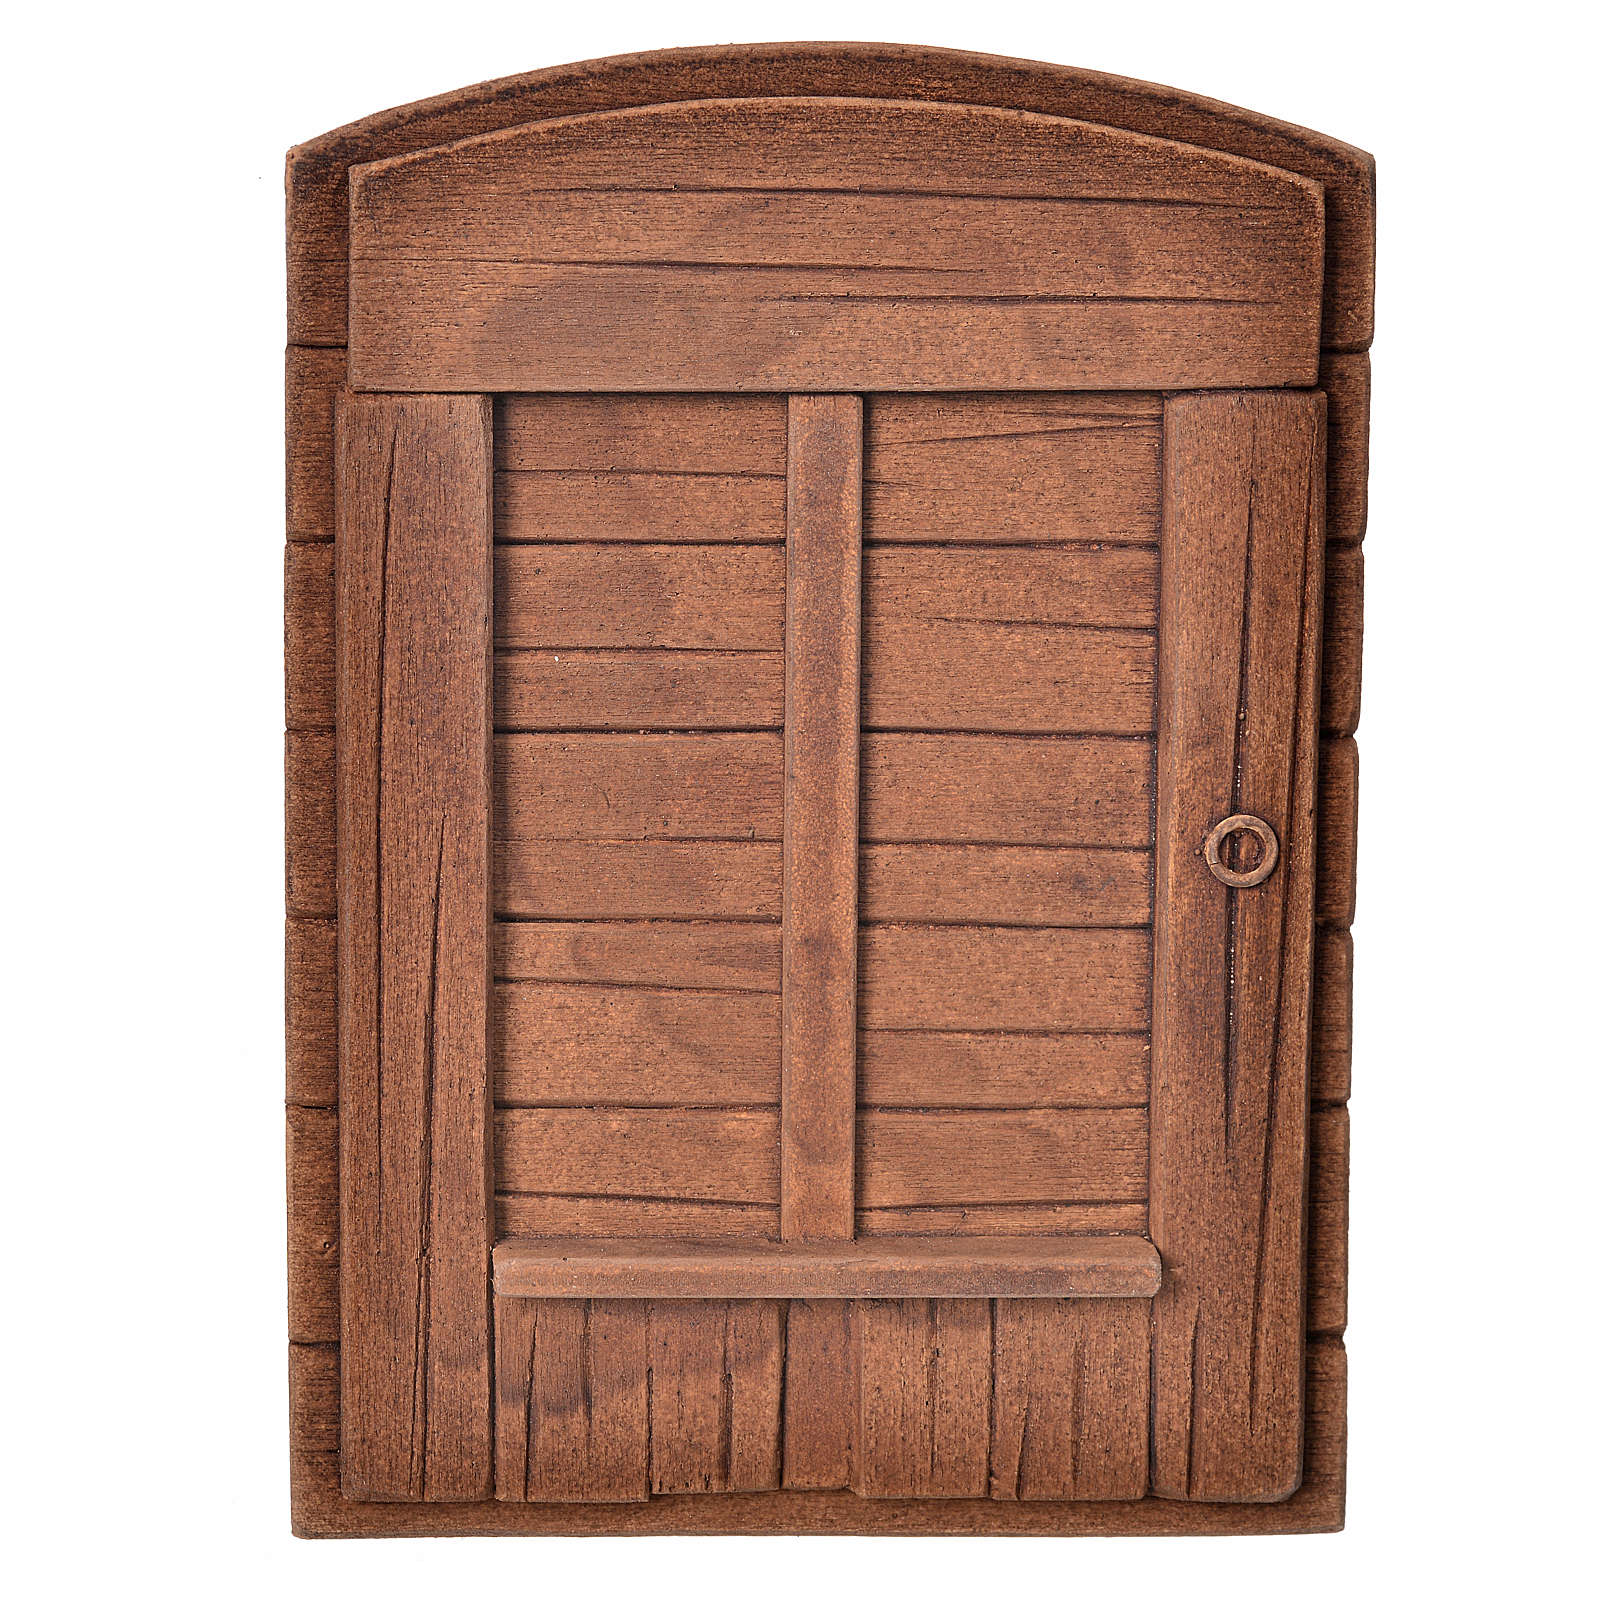 Door in plaster, wood colour for do-it-yourself nativities 4